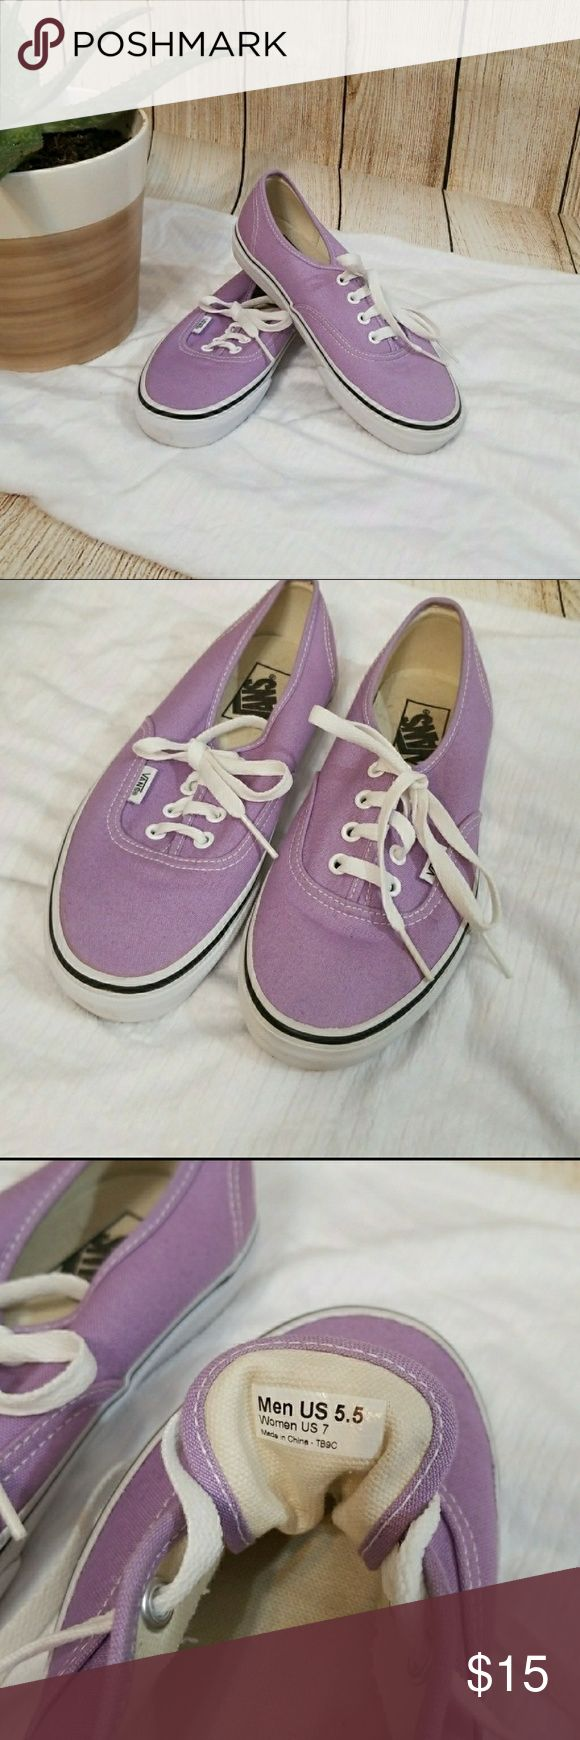 💕final price💕 light purple Vans Worn once for a matching shirt I had, no flaws Vans Shoes Sneakers